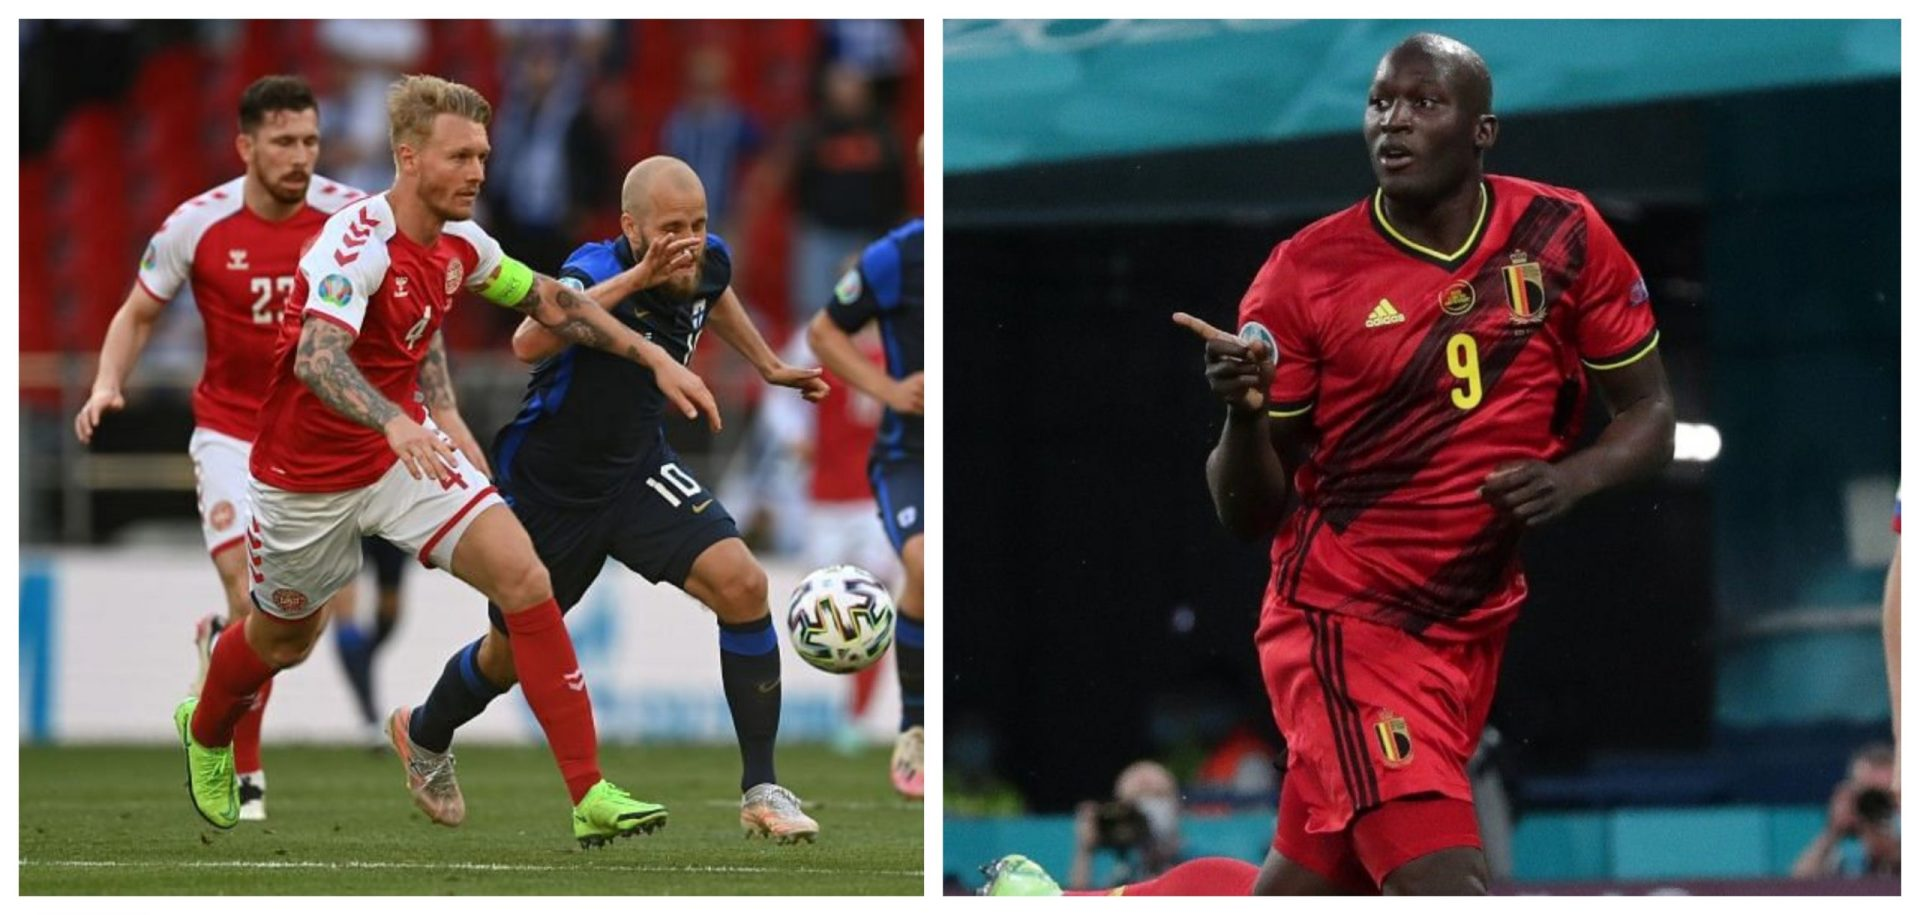 EURO 2020: Denmark vs Belgium Odds, Predictions and Analysis - THE SPORTS ROOM